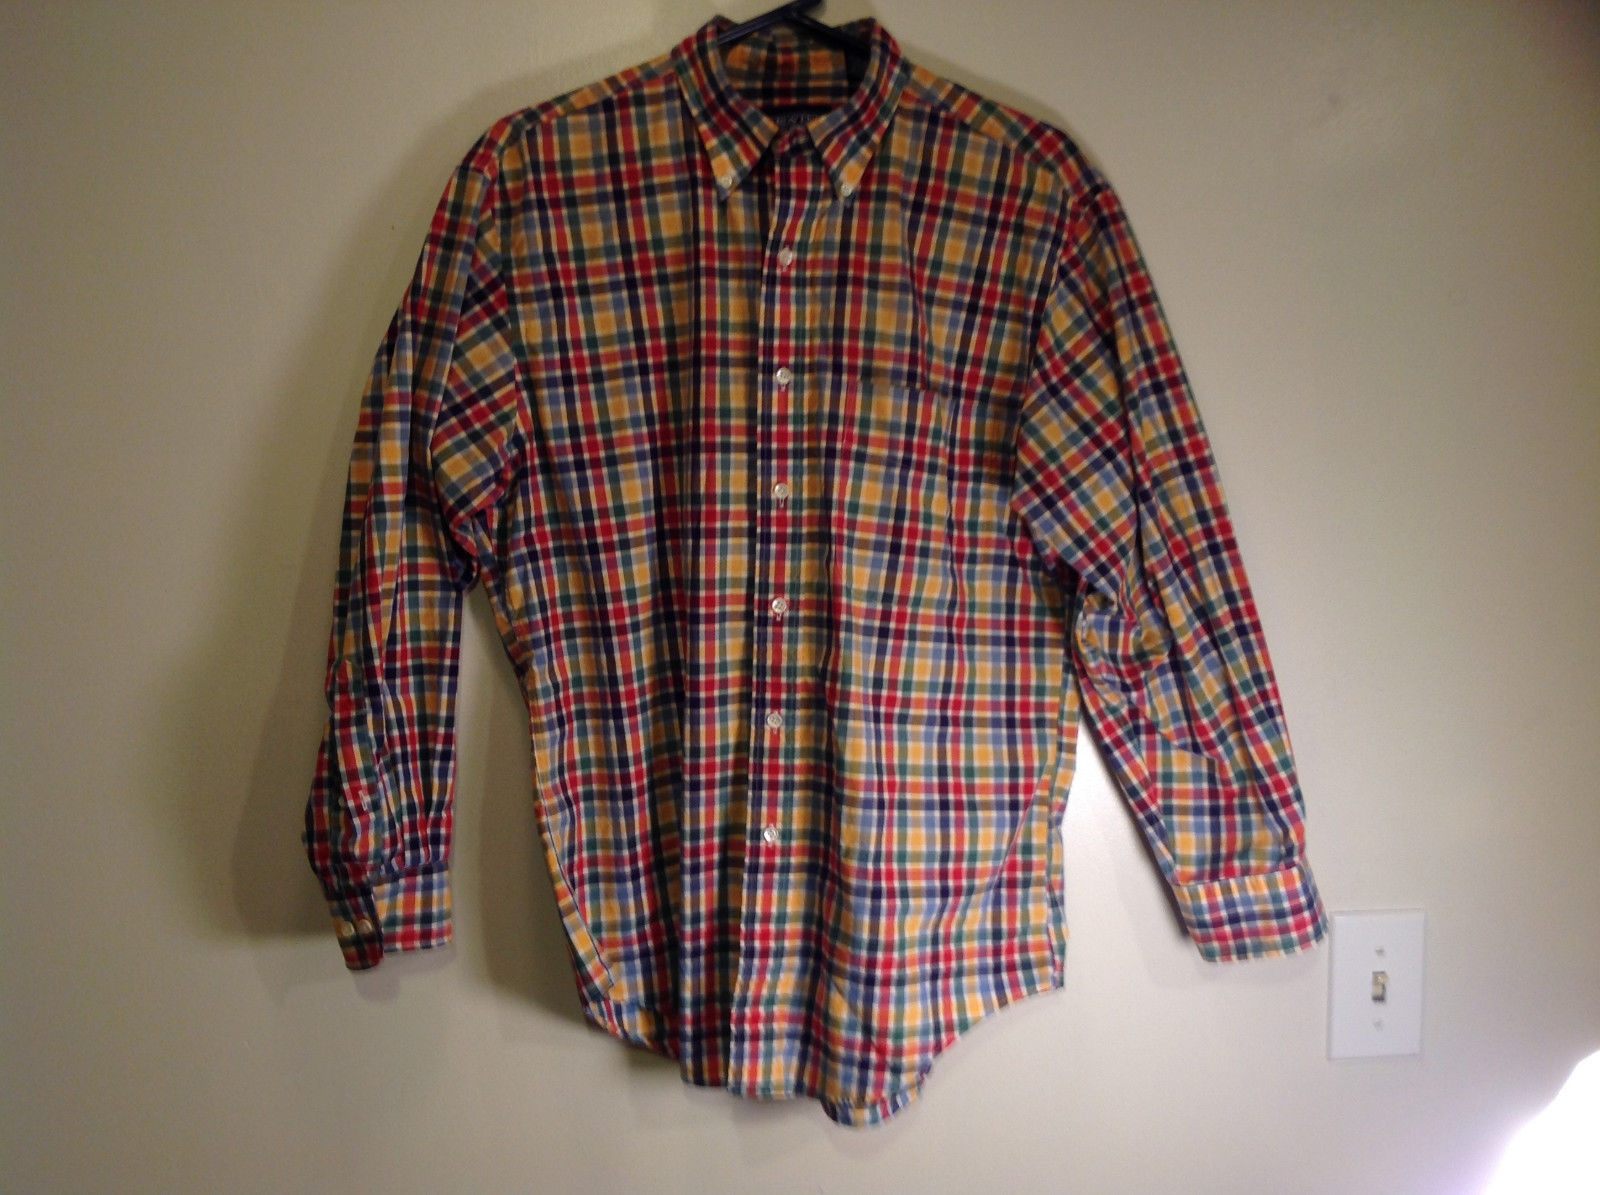 Multicolored Checkered Long Sleeve Button Up Shirt Lands End Size Medium Reg